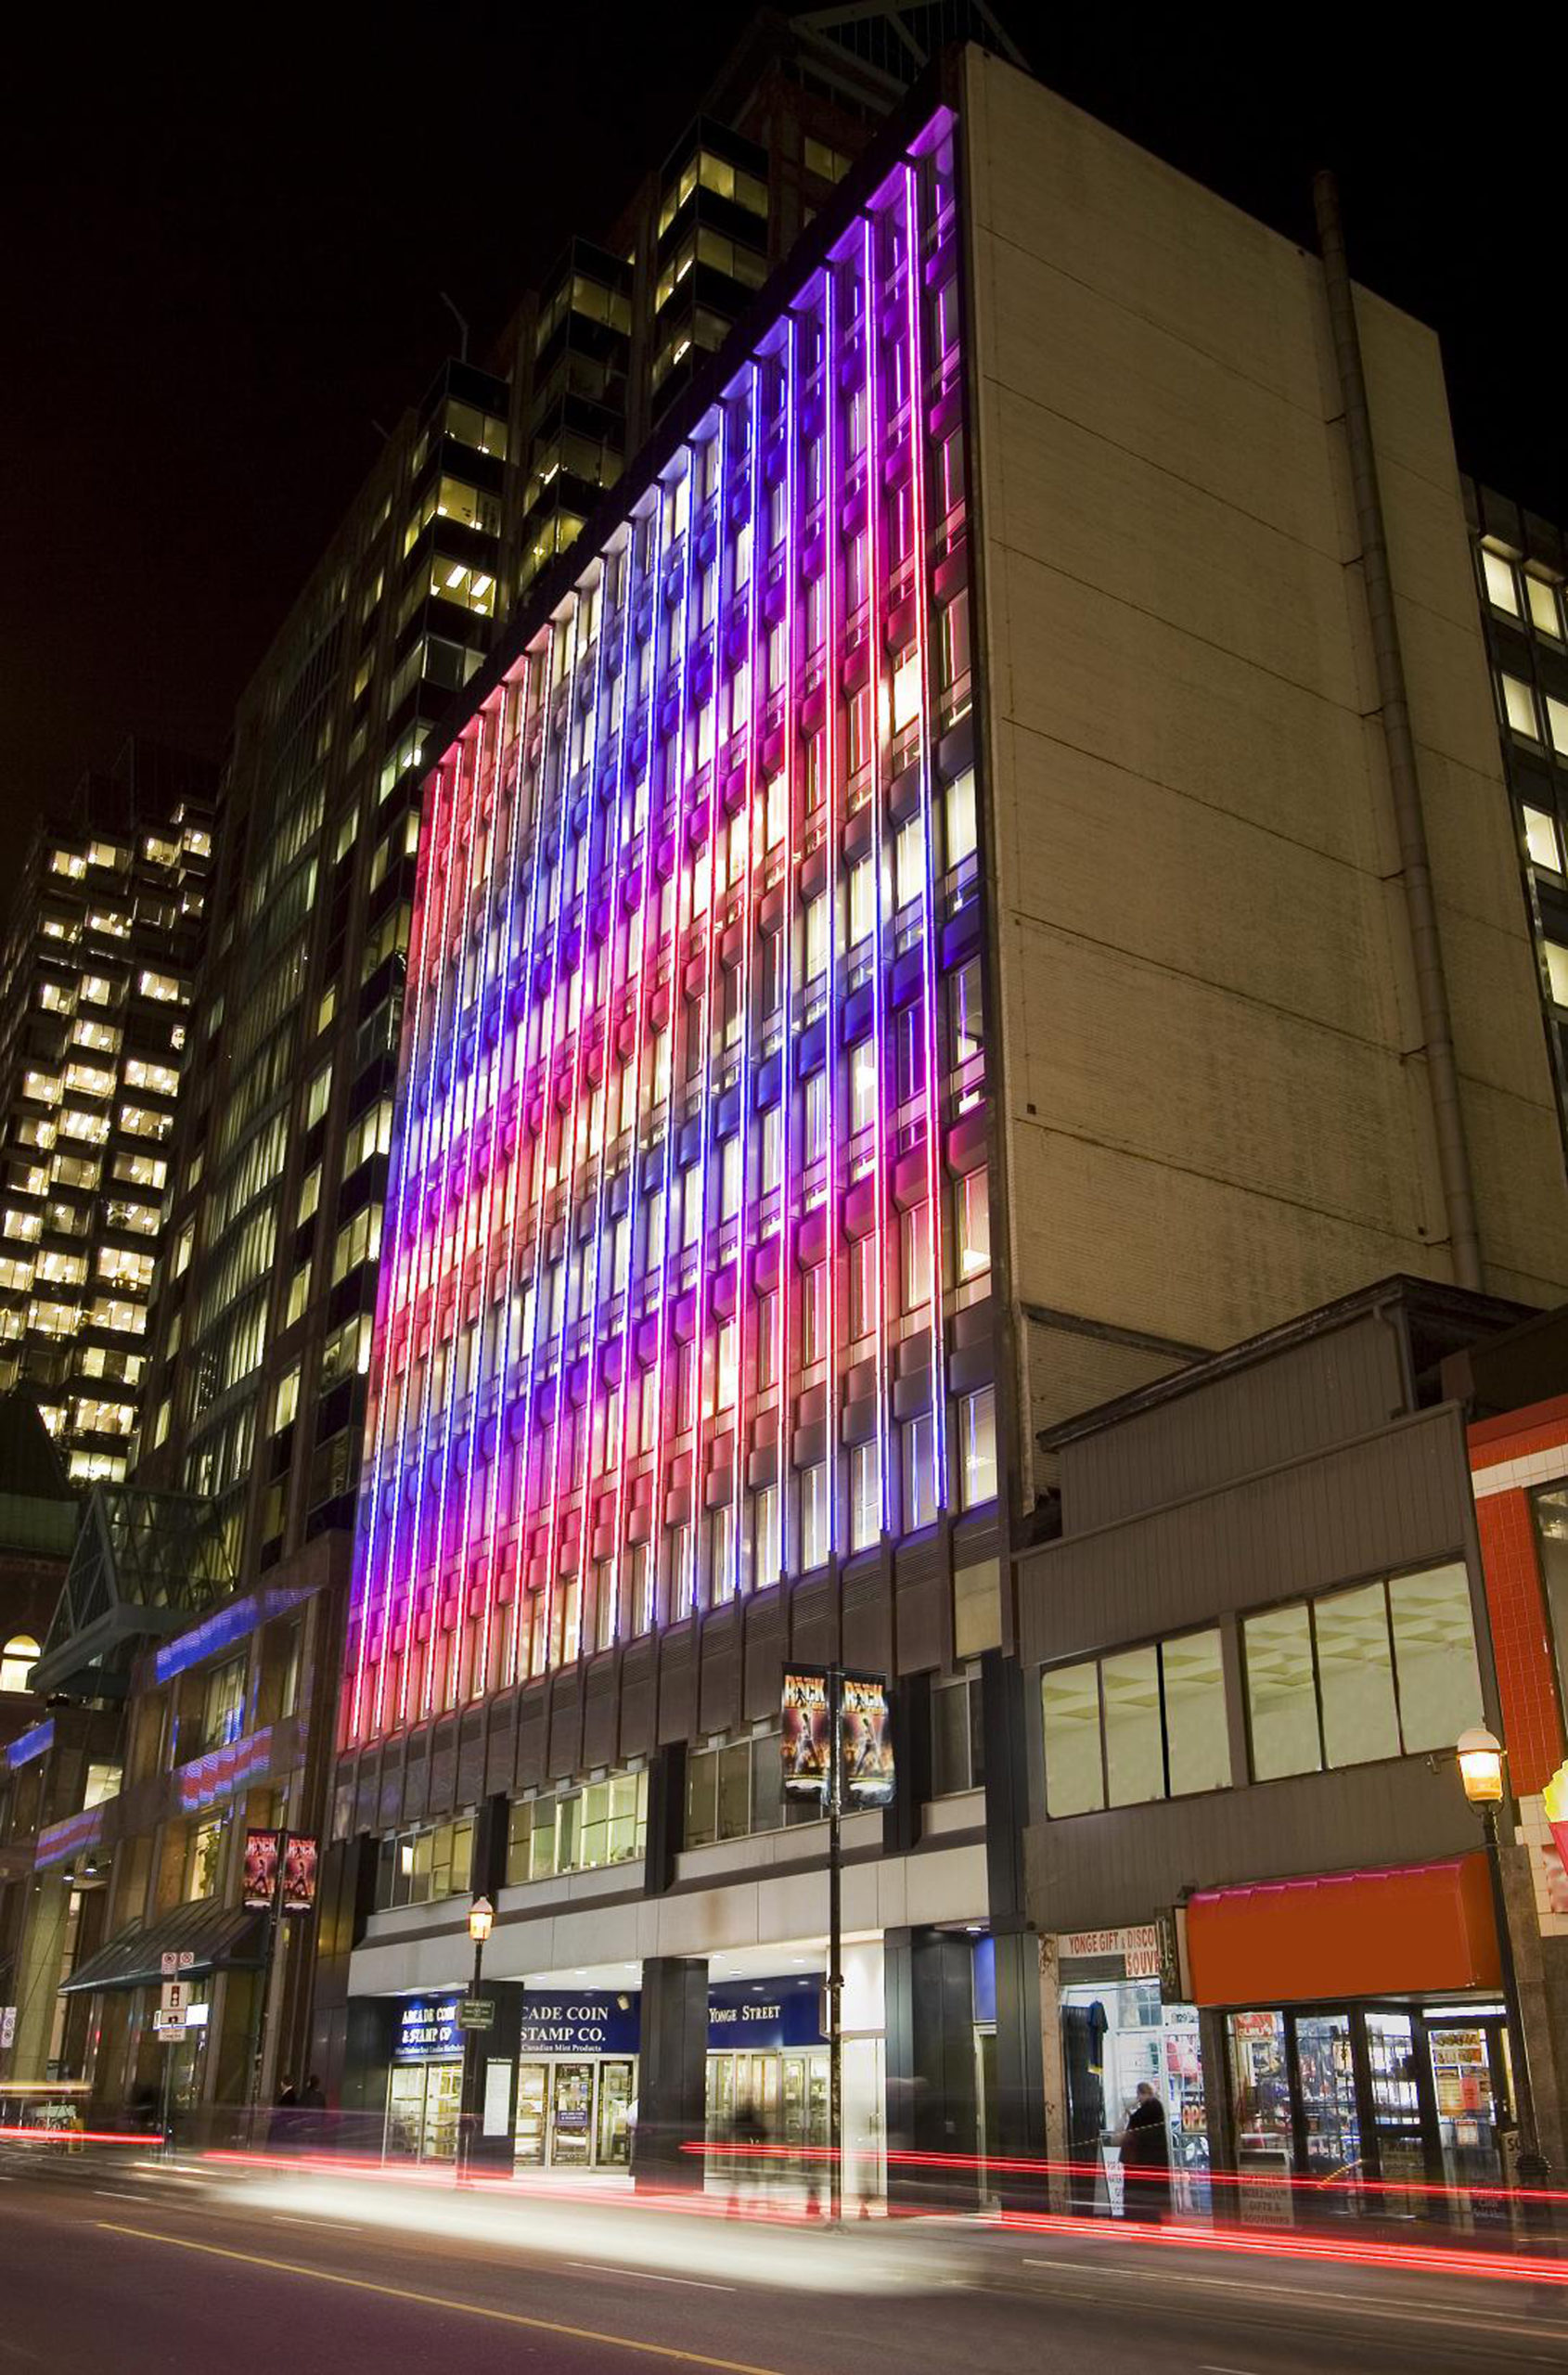 DNU Waterfall Light Show 2011 Colour Kinetics LED display 88x76ft (137 Yonge Street, Toronto)